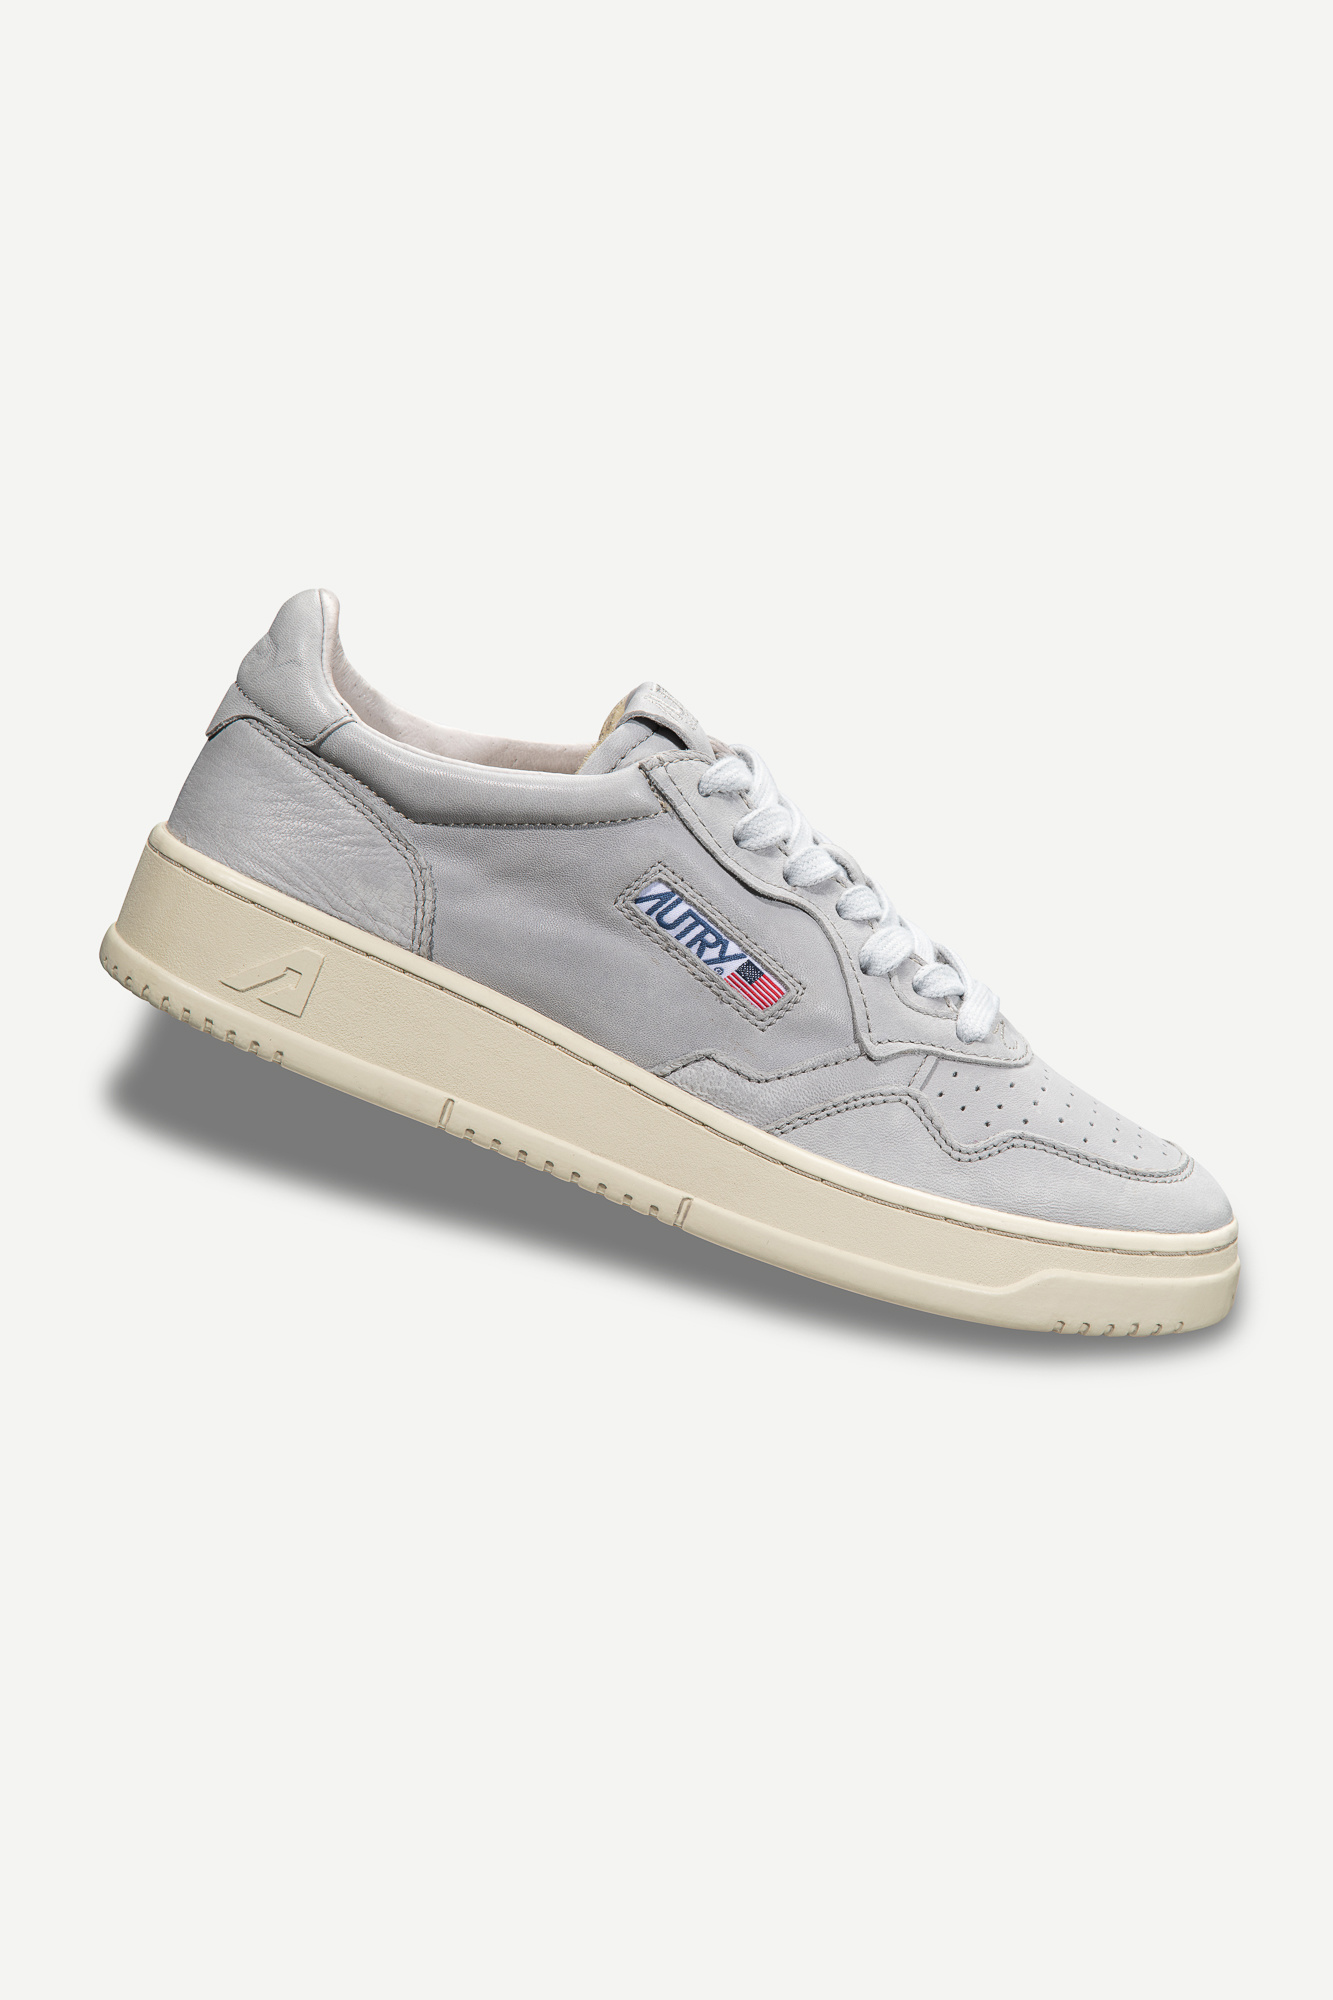 Medalist 01 Low Goat Grey Leather-1